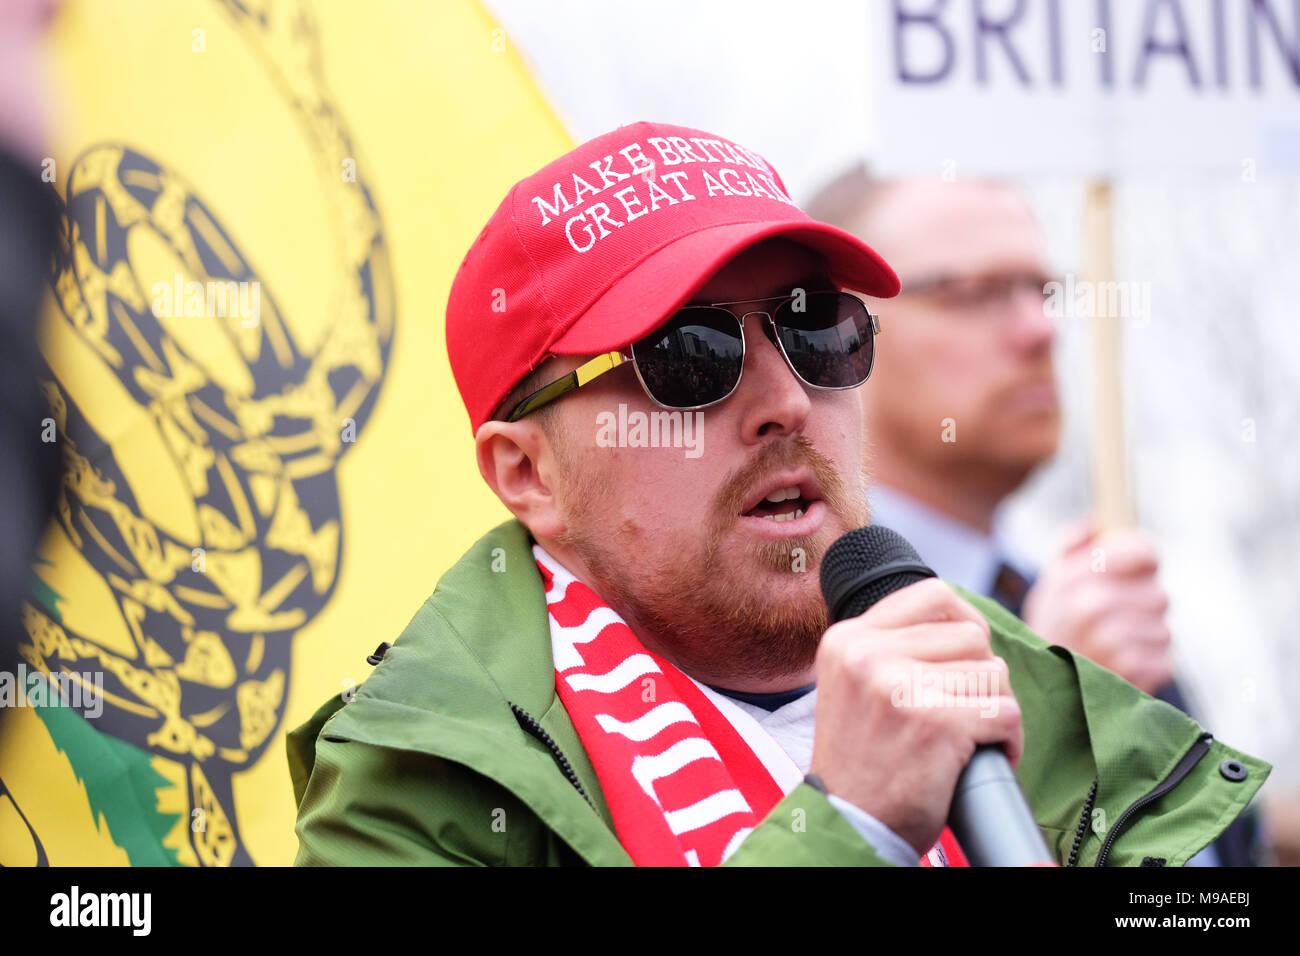 Birmingham, UK - Saturday 24th March 2018 - Luke Nash-Jones activist for Make Britain Great Again at the demonstration and march by the Football Lads Alliance ( FLA ) in Birmingham. Photo Steven May / Alamy Live News - Stock Image